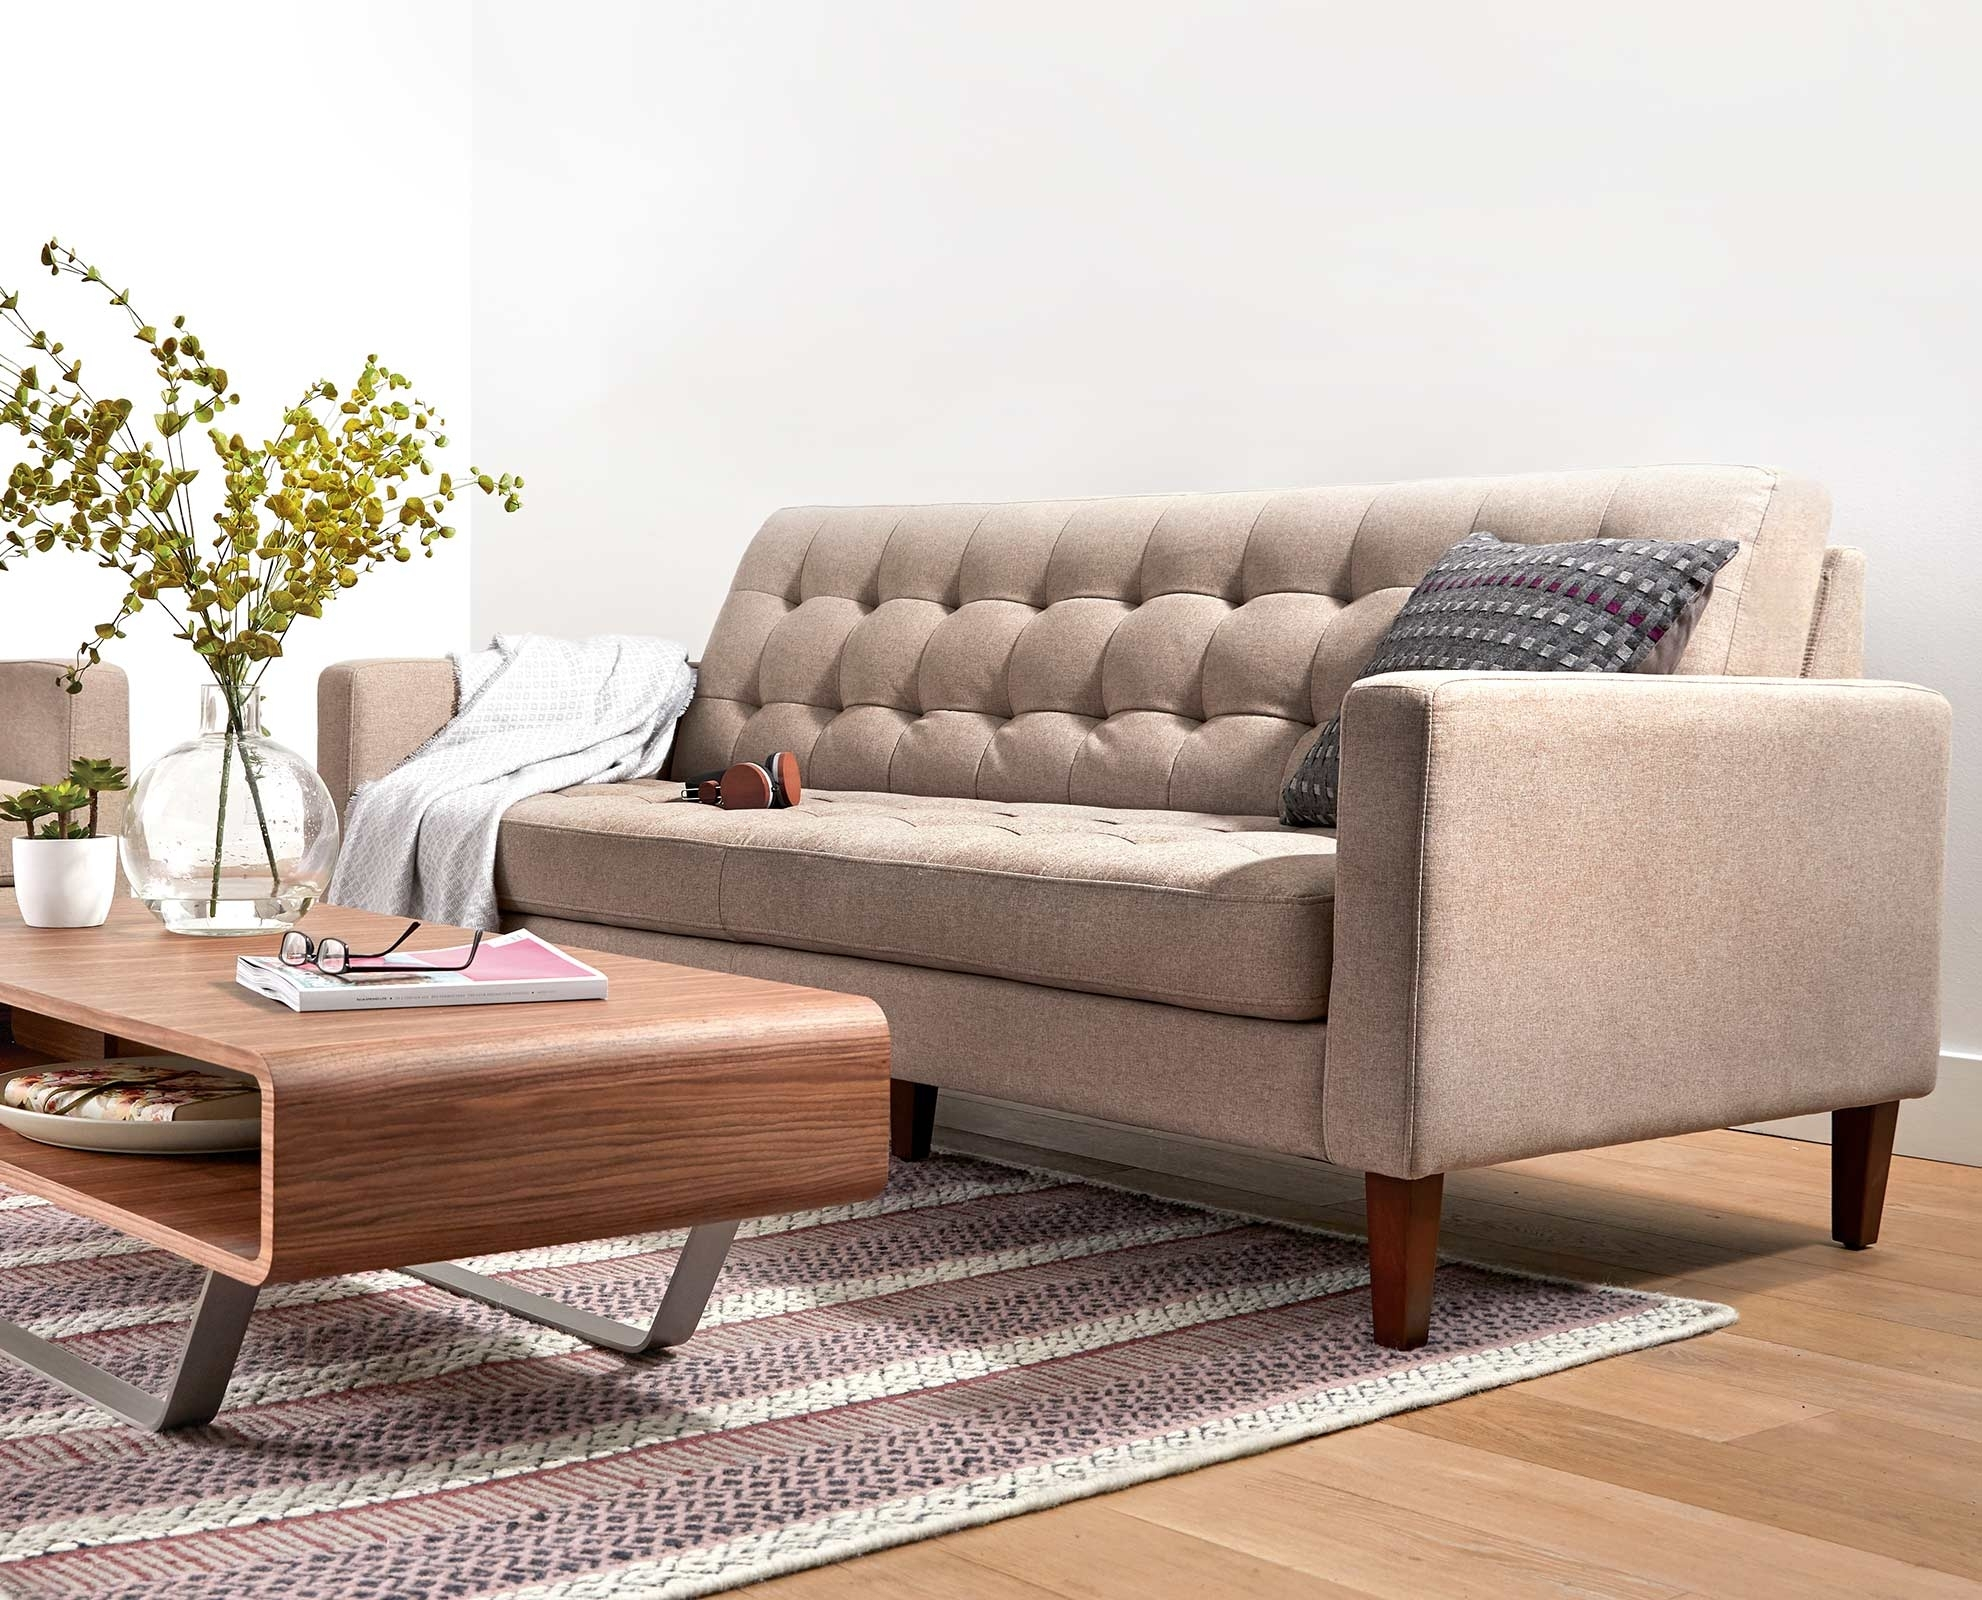 Laura Sofa From Dania Furniture | Living Room Furniture | Pinterest with regard to Dania Sectional Sofas